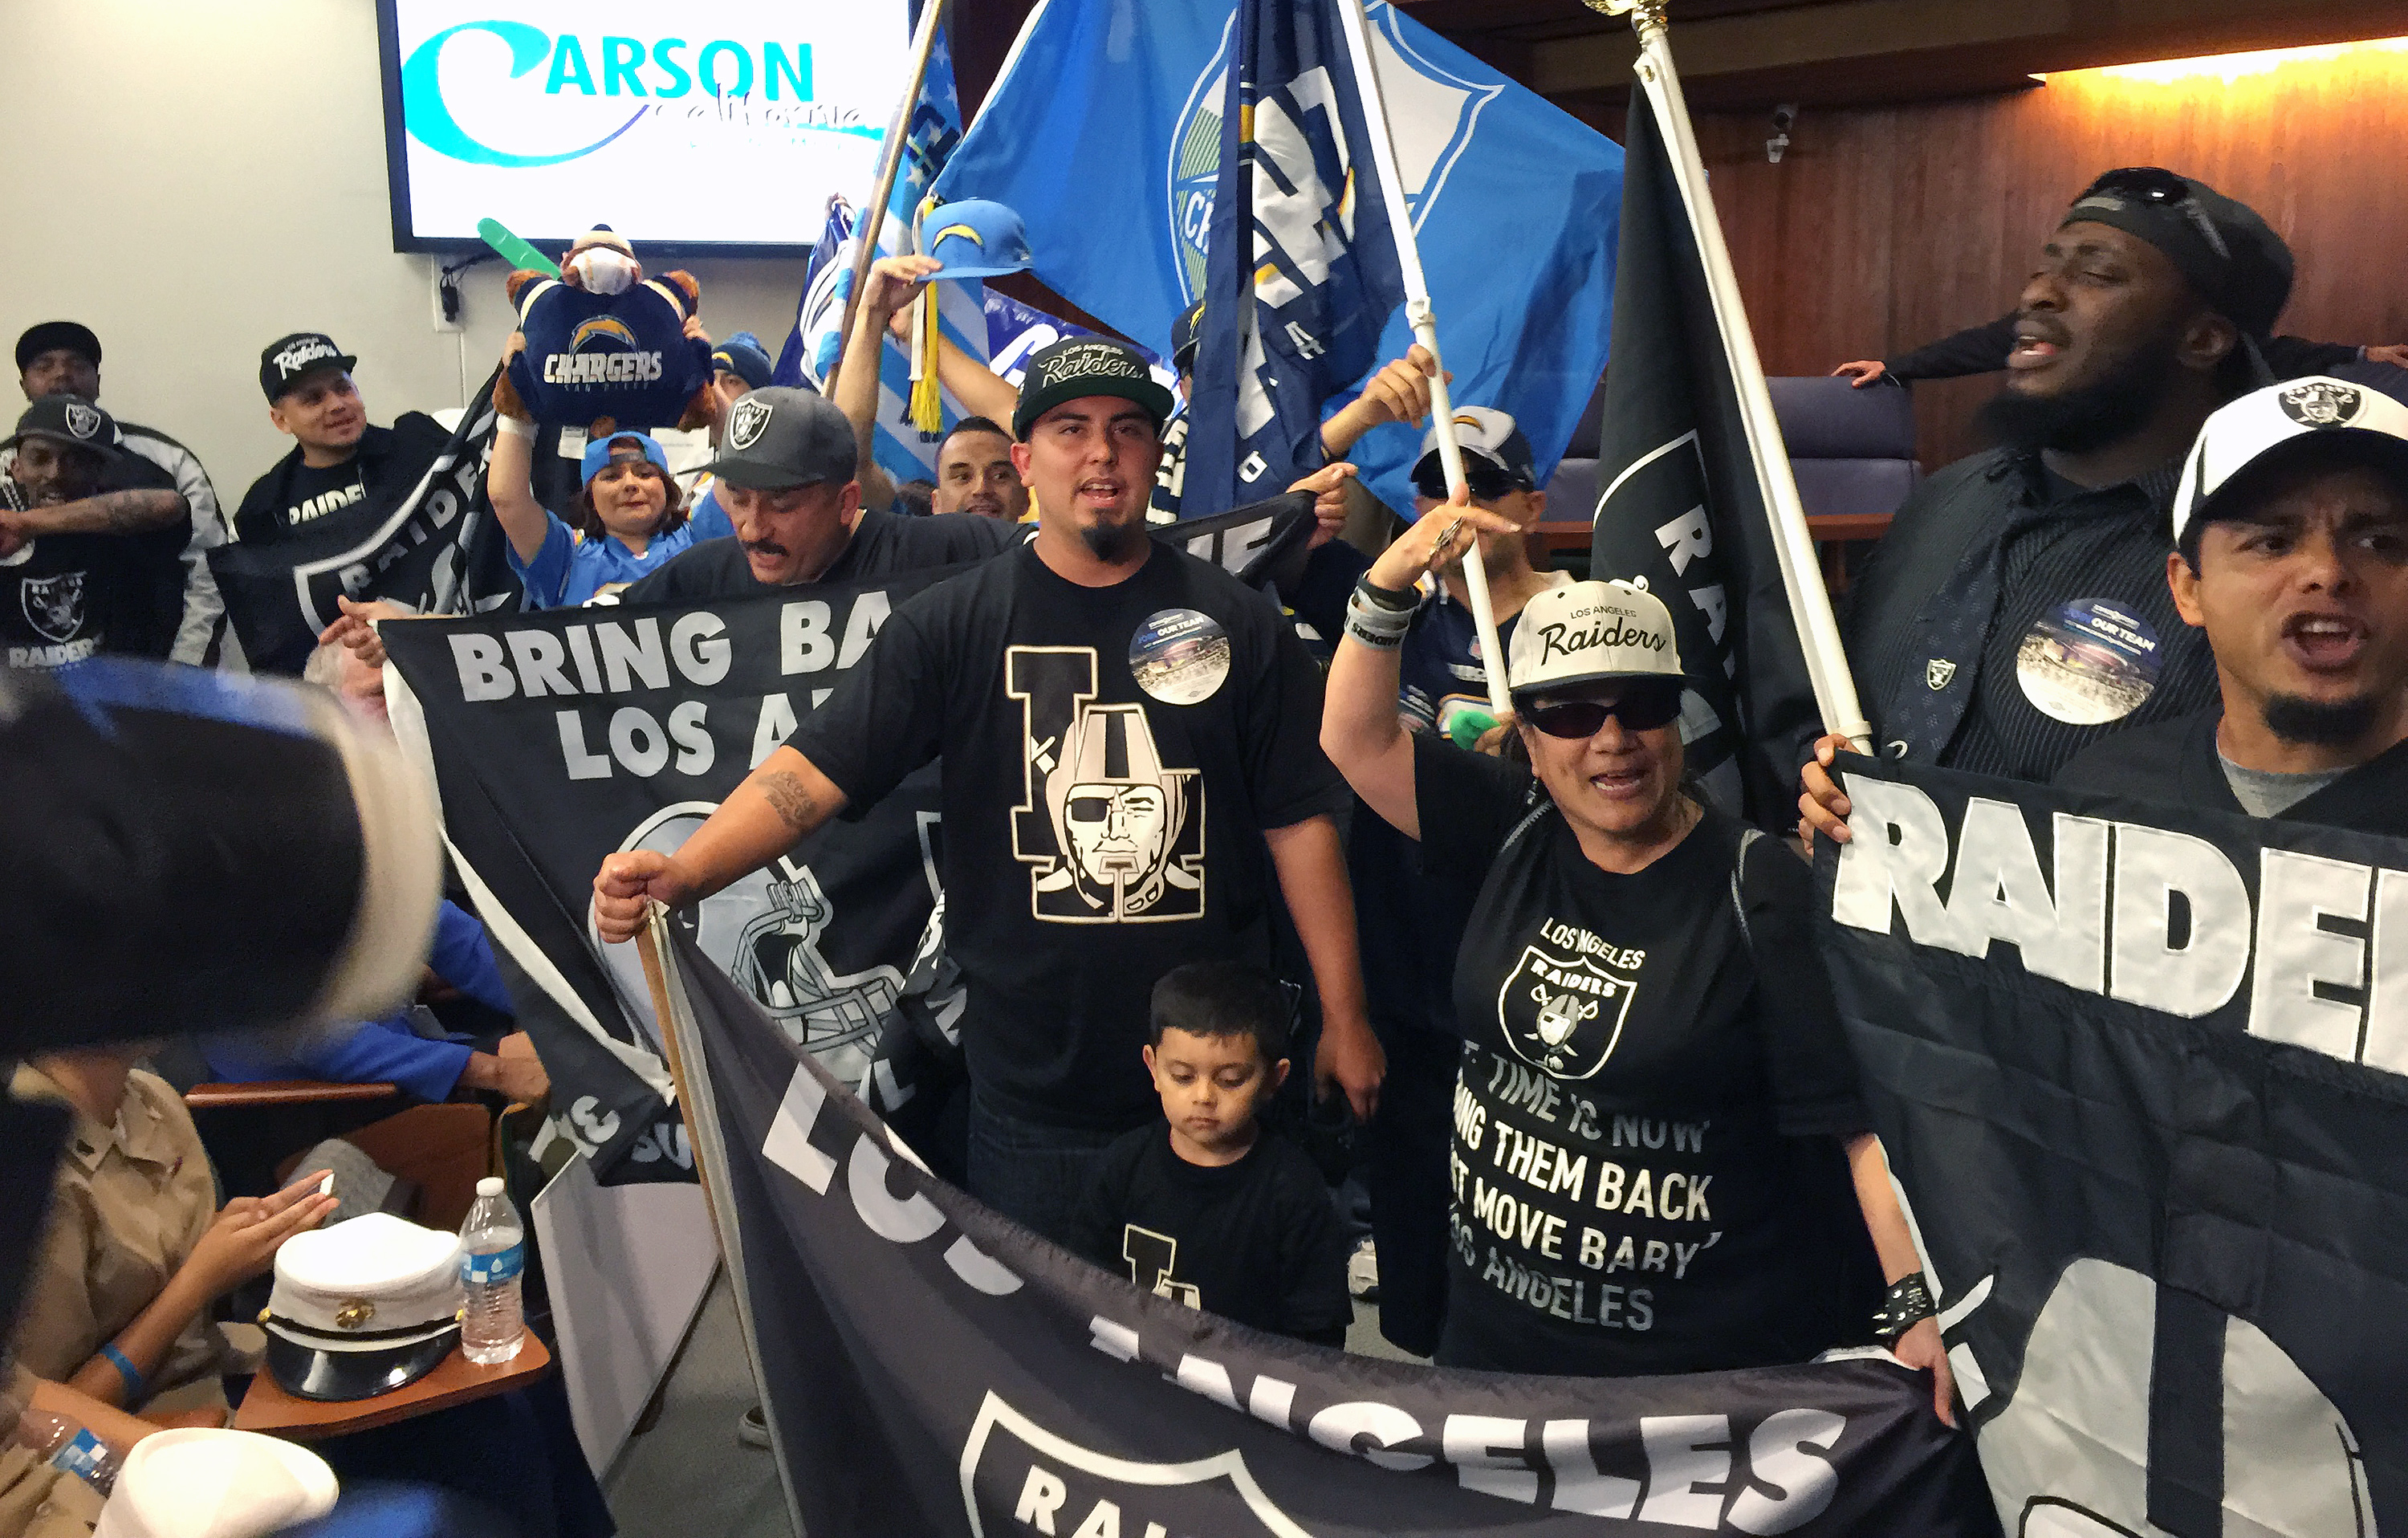 """In this photo taken Tuesday, April 21, 2015, football fans, who want to see an NFL team return to the Los Angeles area after two decades, chant """" bring them back!"""" before a Carson City Council vote on whether to approve the plan to build an NFL football s"""